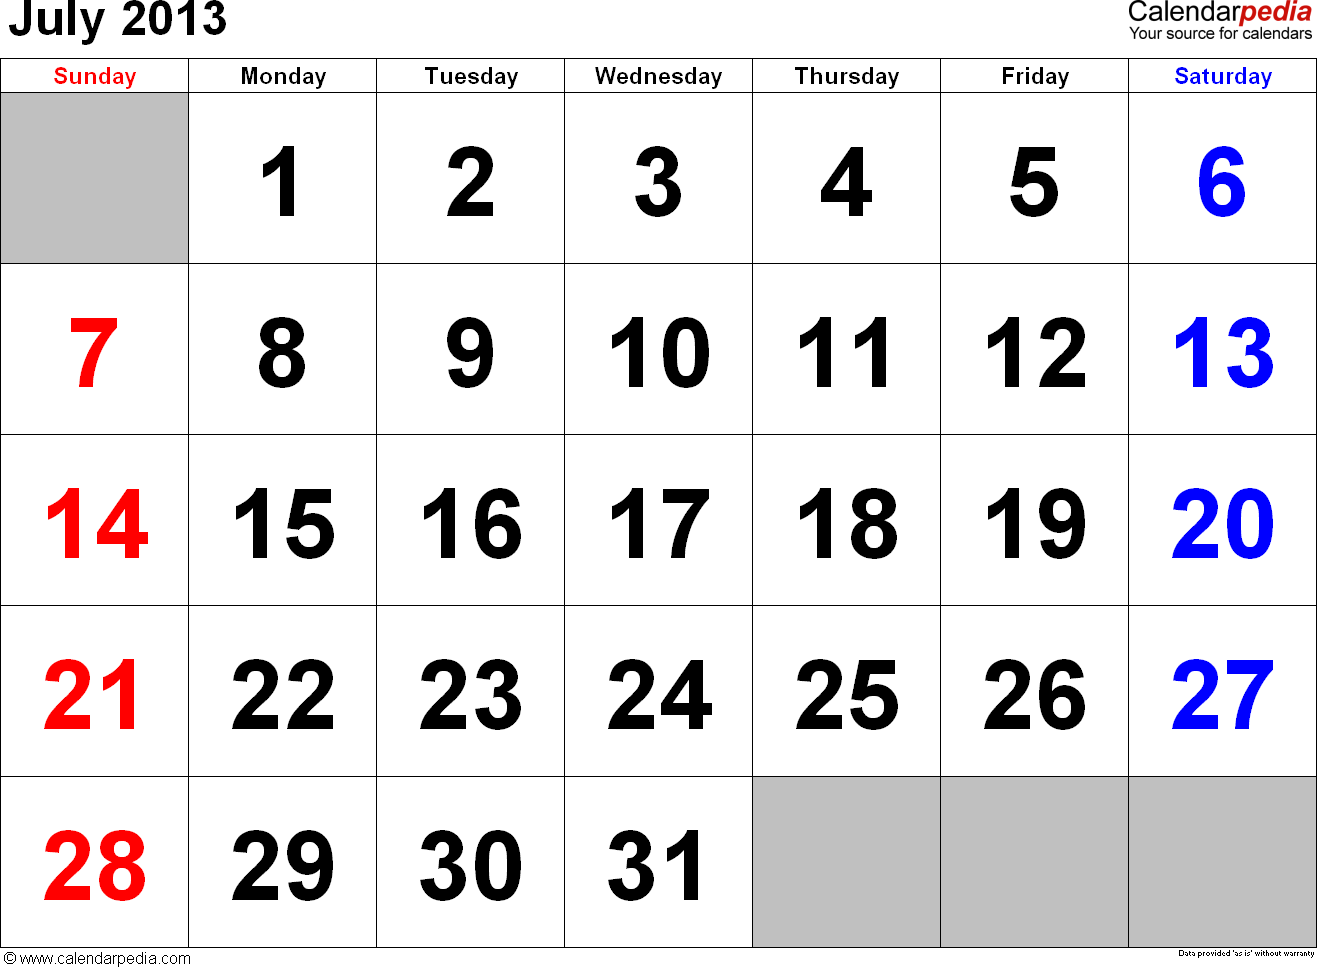 July 2013 calendar, landscape orientation, large numerals, available as printable templates for Word, Excel and PDF